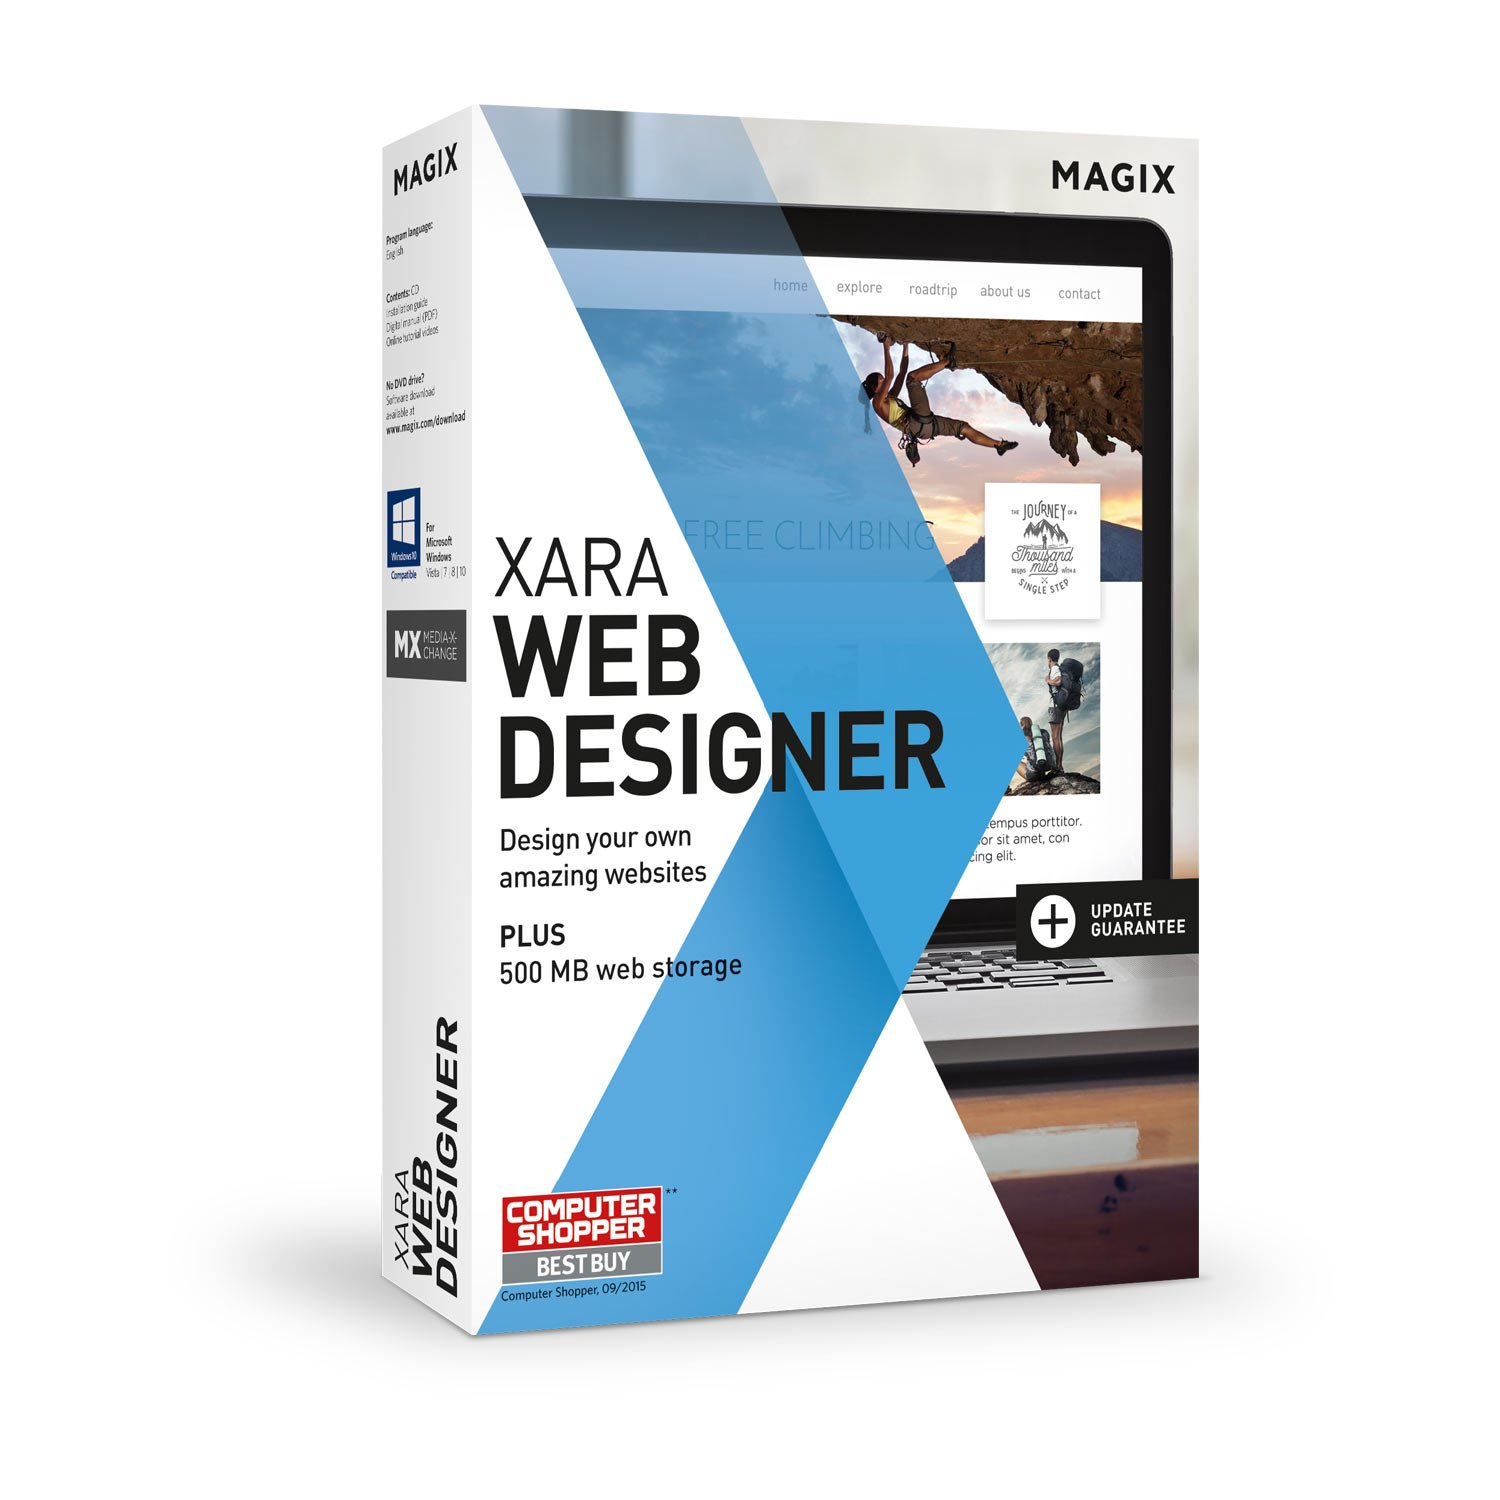 Xara Web Designer - 15 - Easily create your own websites by MAGIX